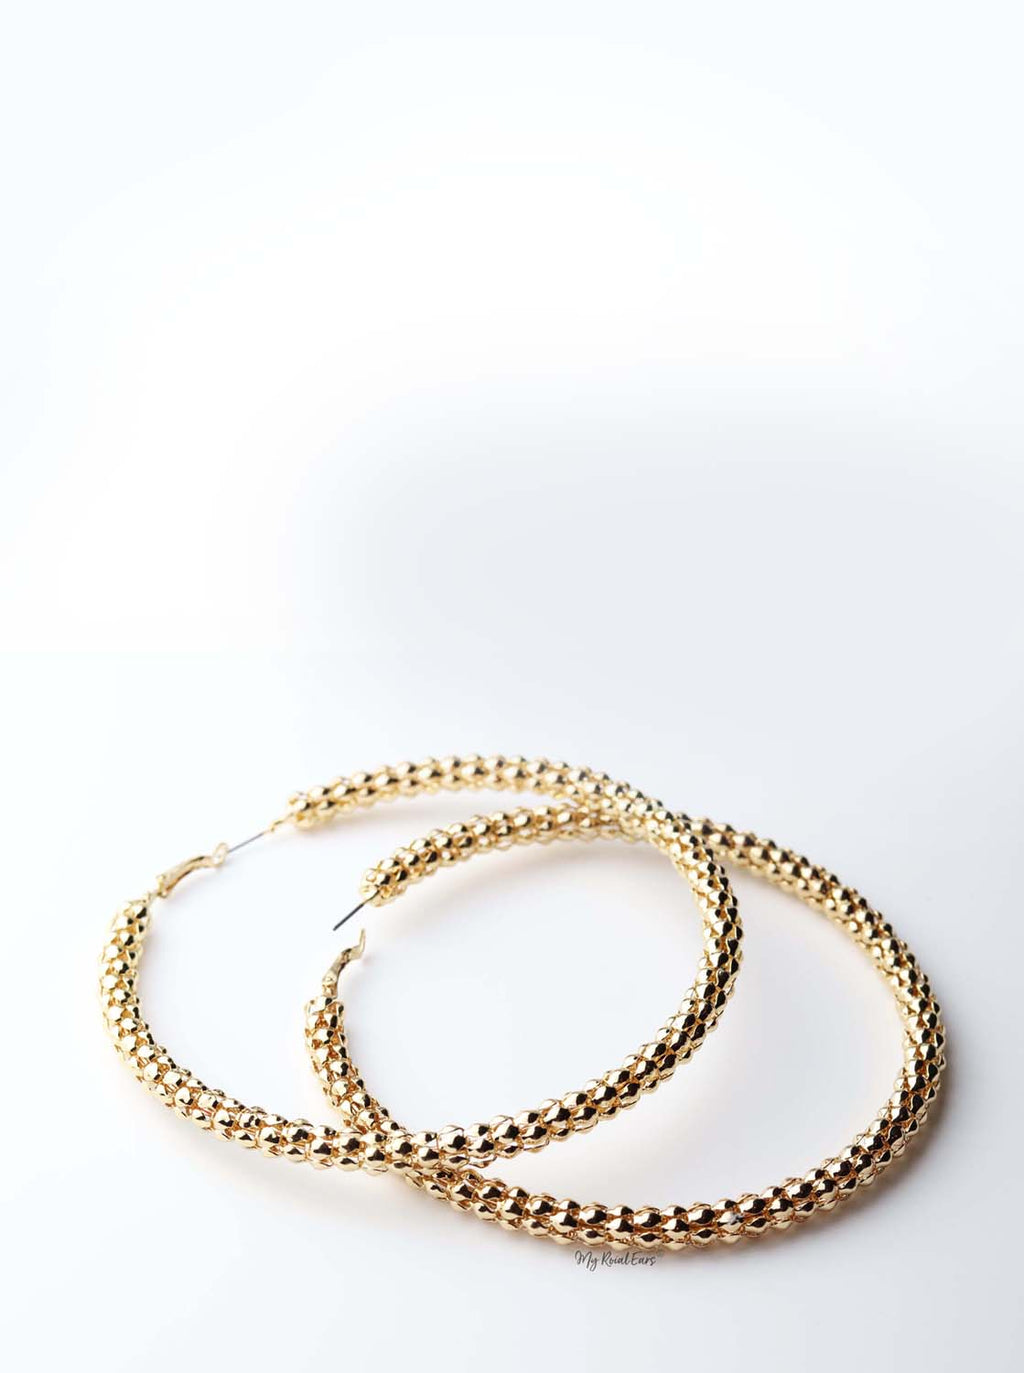 Phaedra Hoop- gold plated statement detailed metal hoop earrings - My Roial Ears LTD